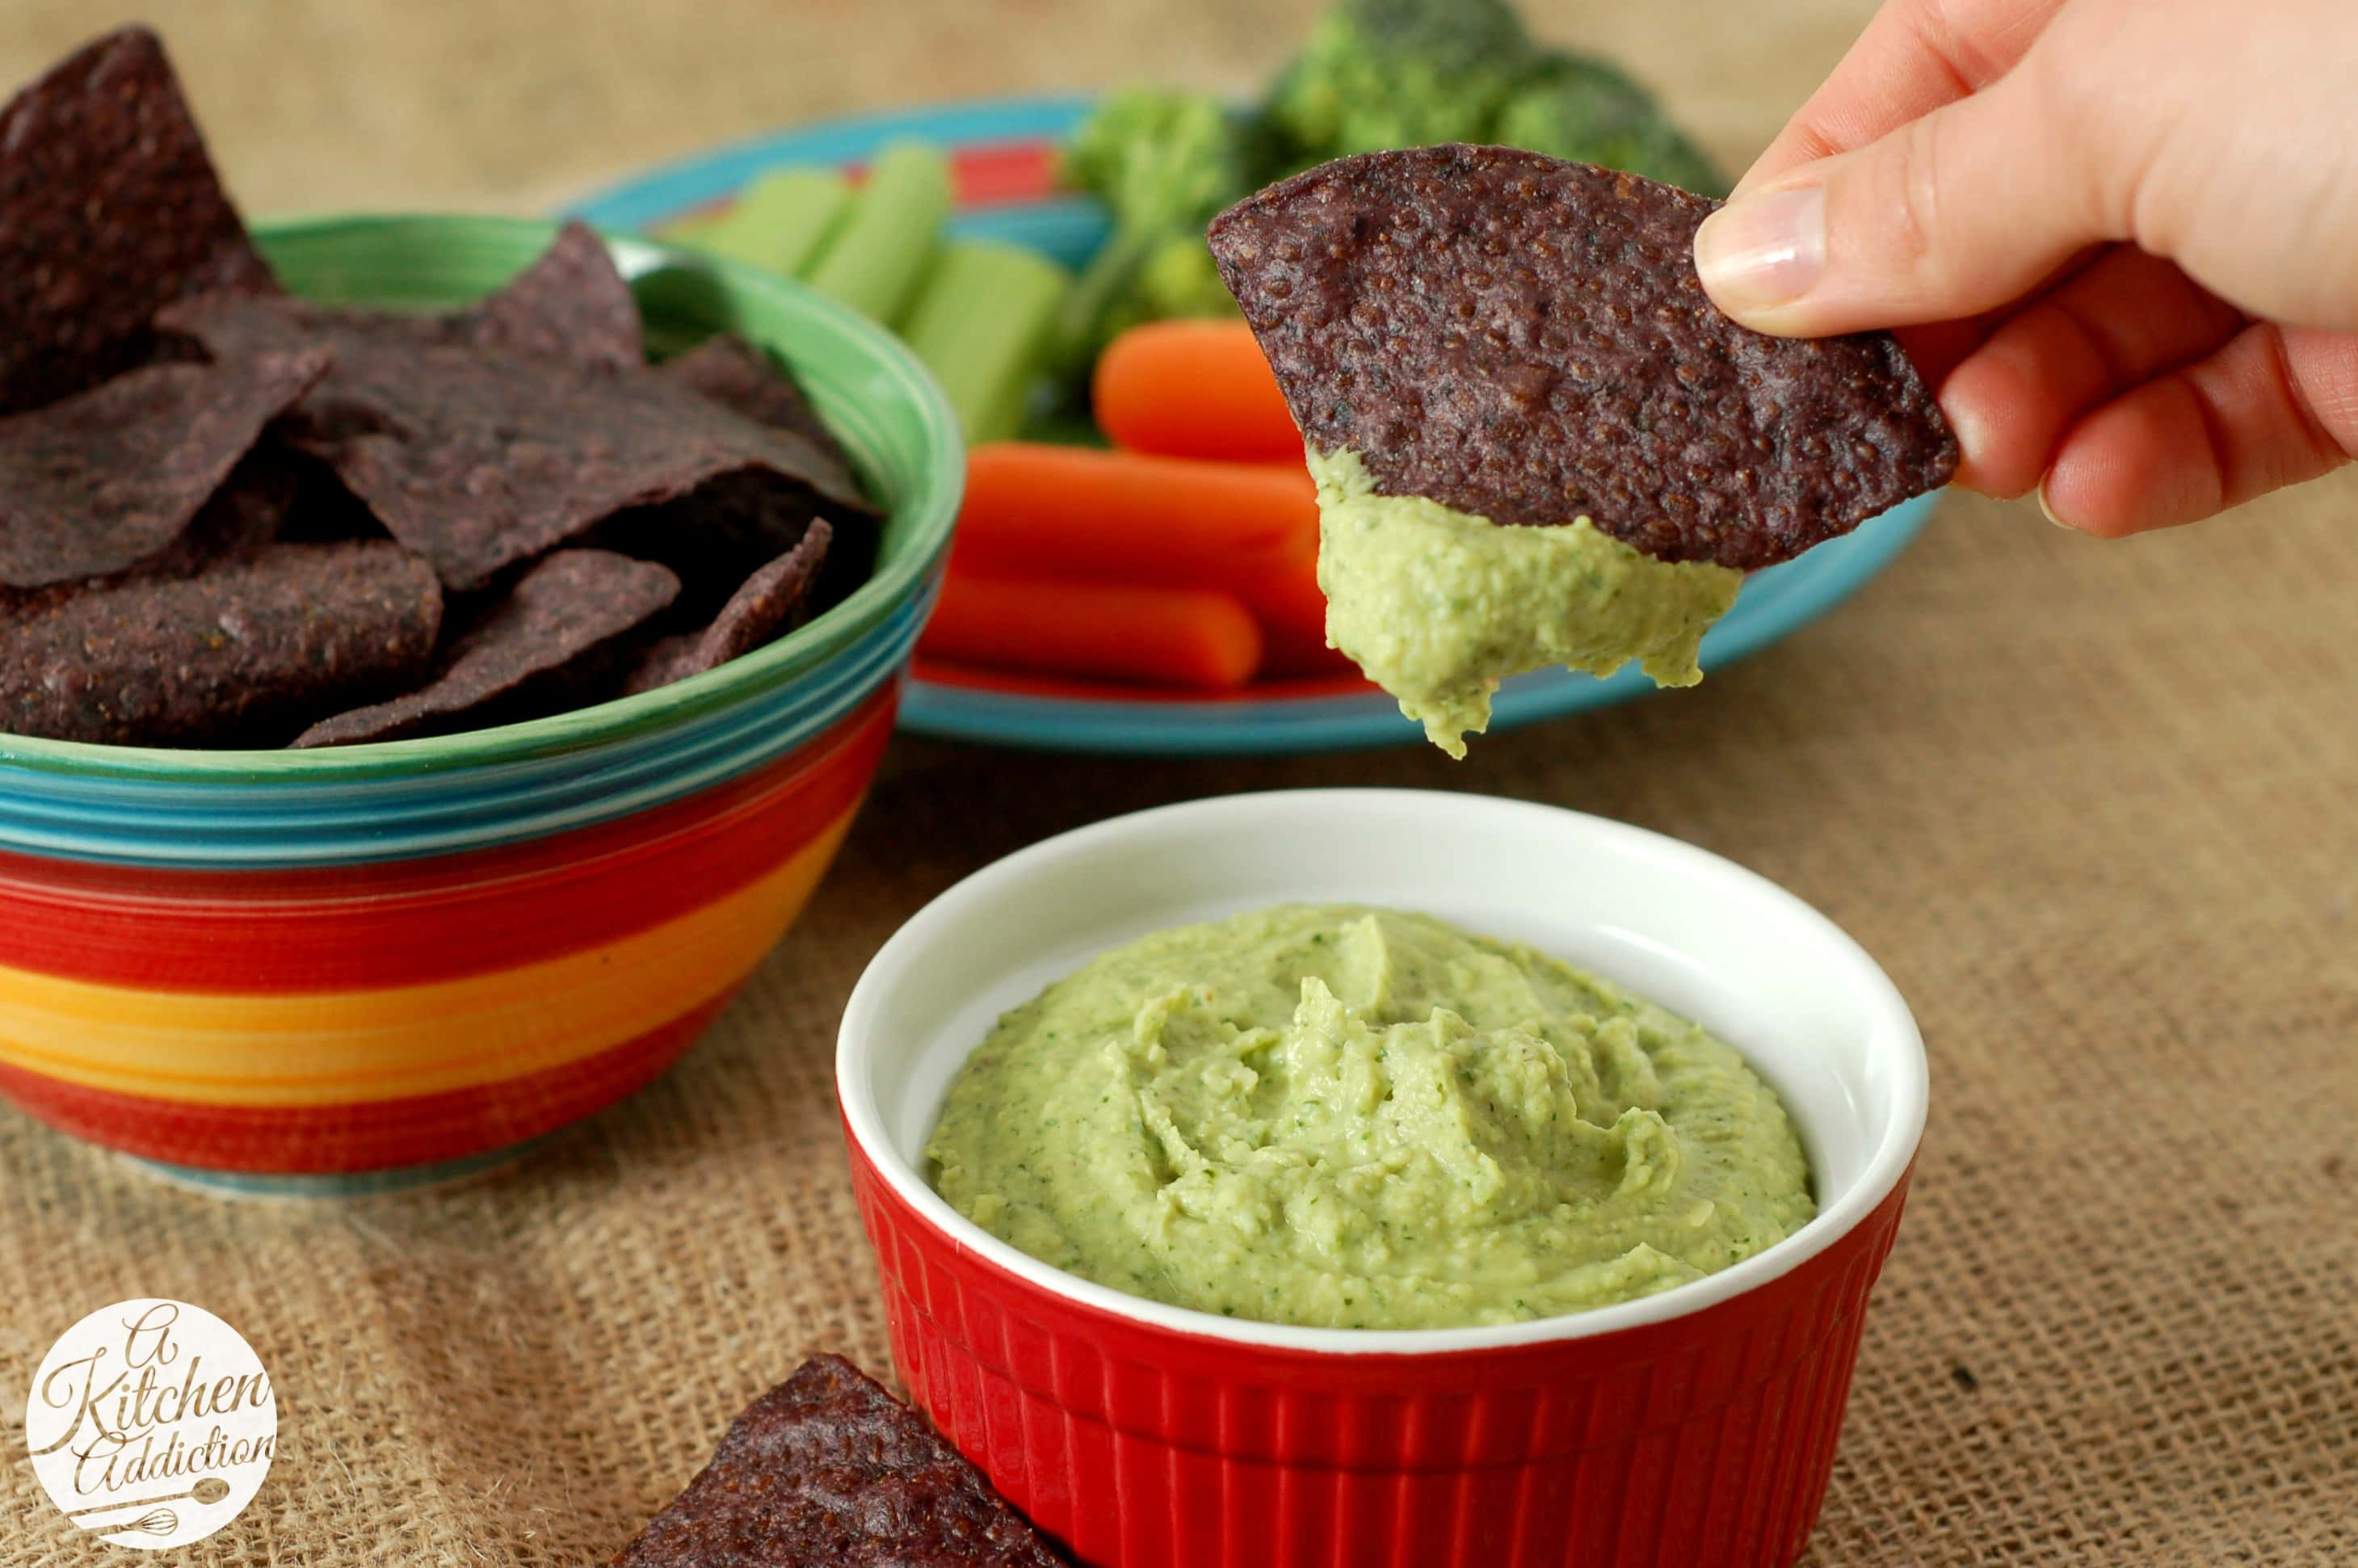 Cilantro lime jalapeno hummus recipe a kitchen addiction for A kitchen addiction